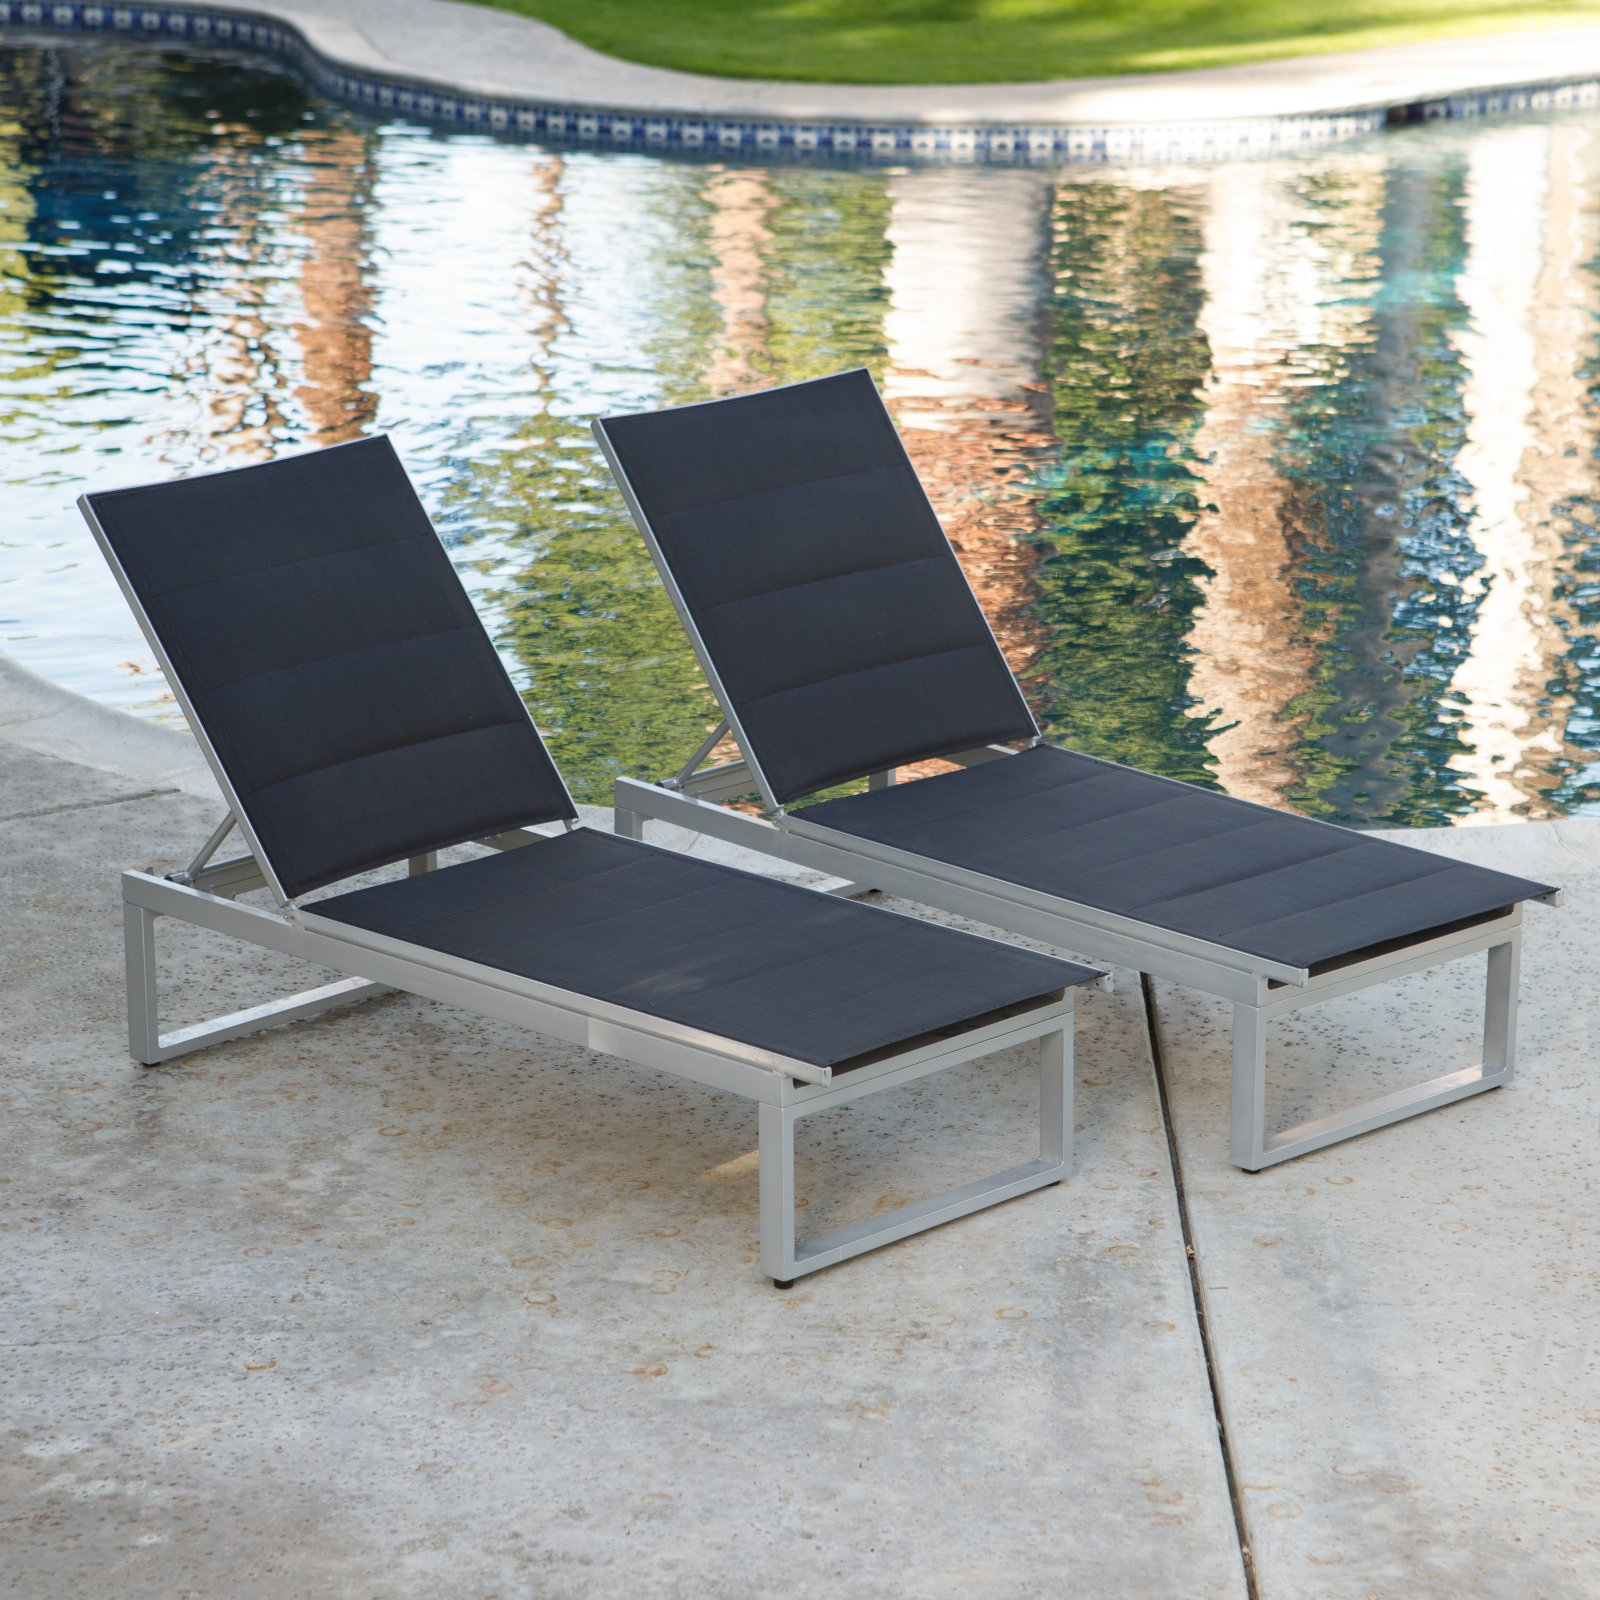 Coral Coast Southwick Padded Sling Outdoor Chaise Lounge - Set of 2